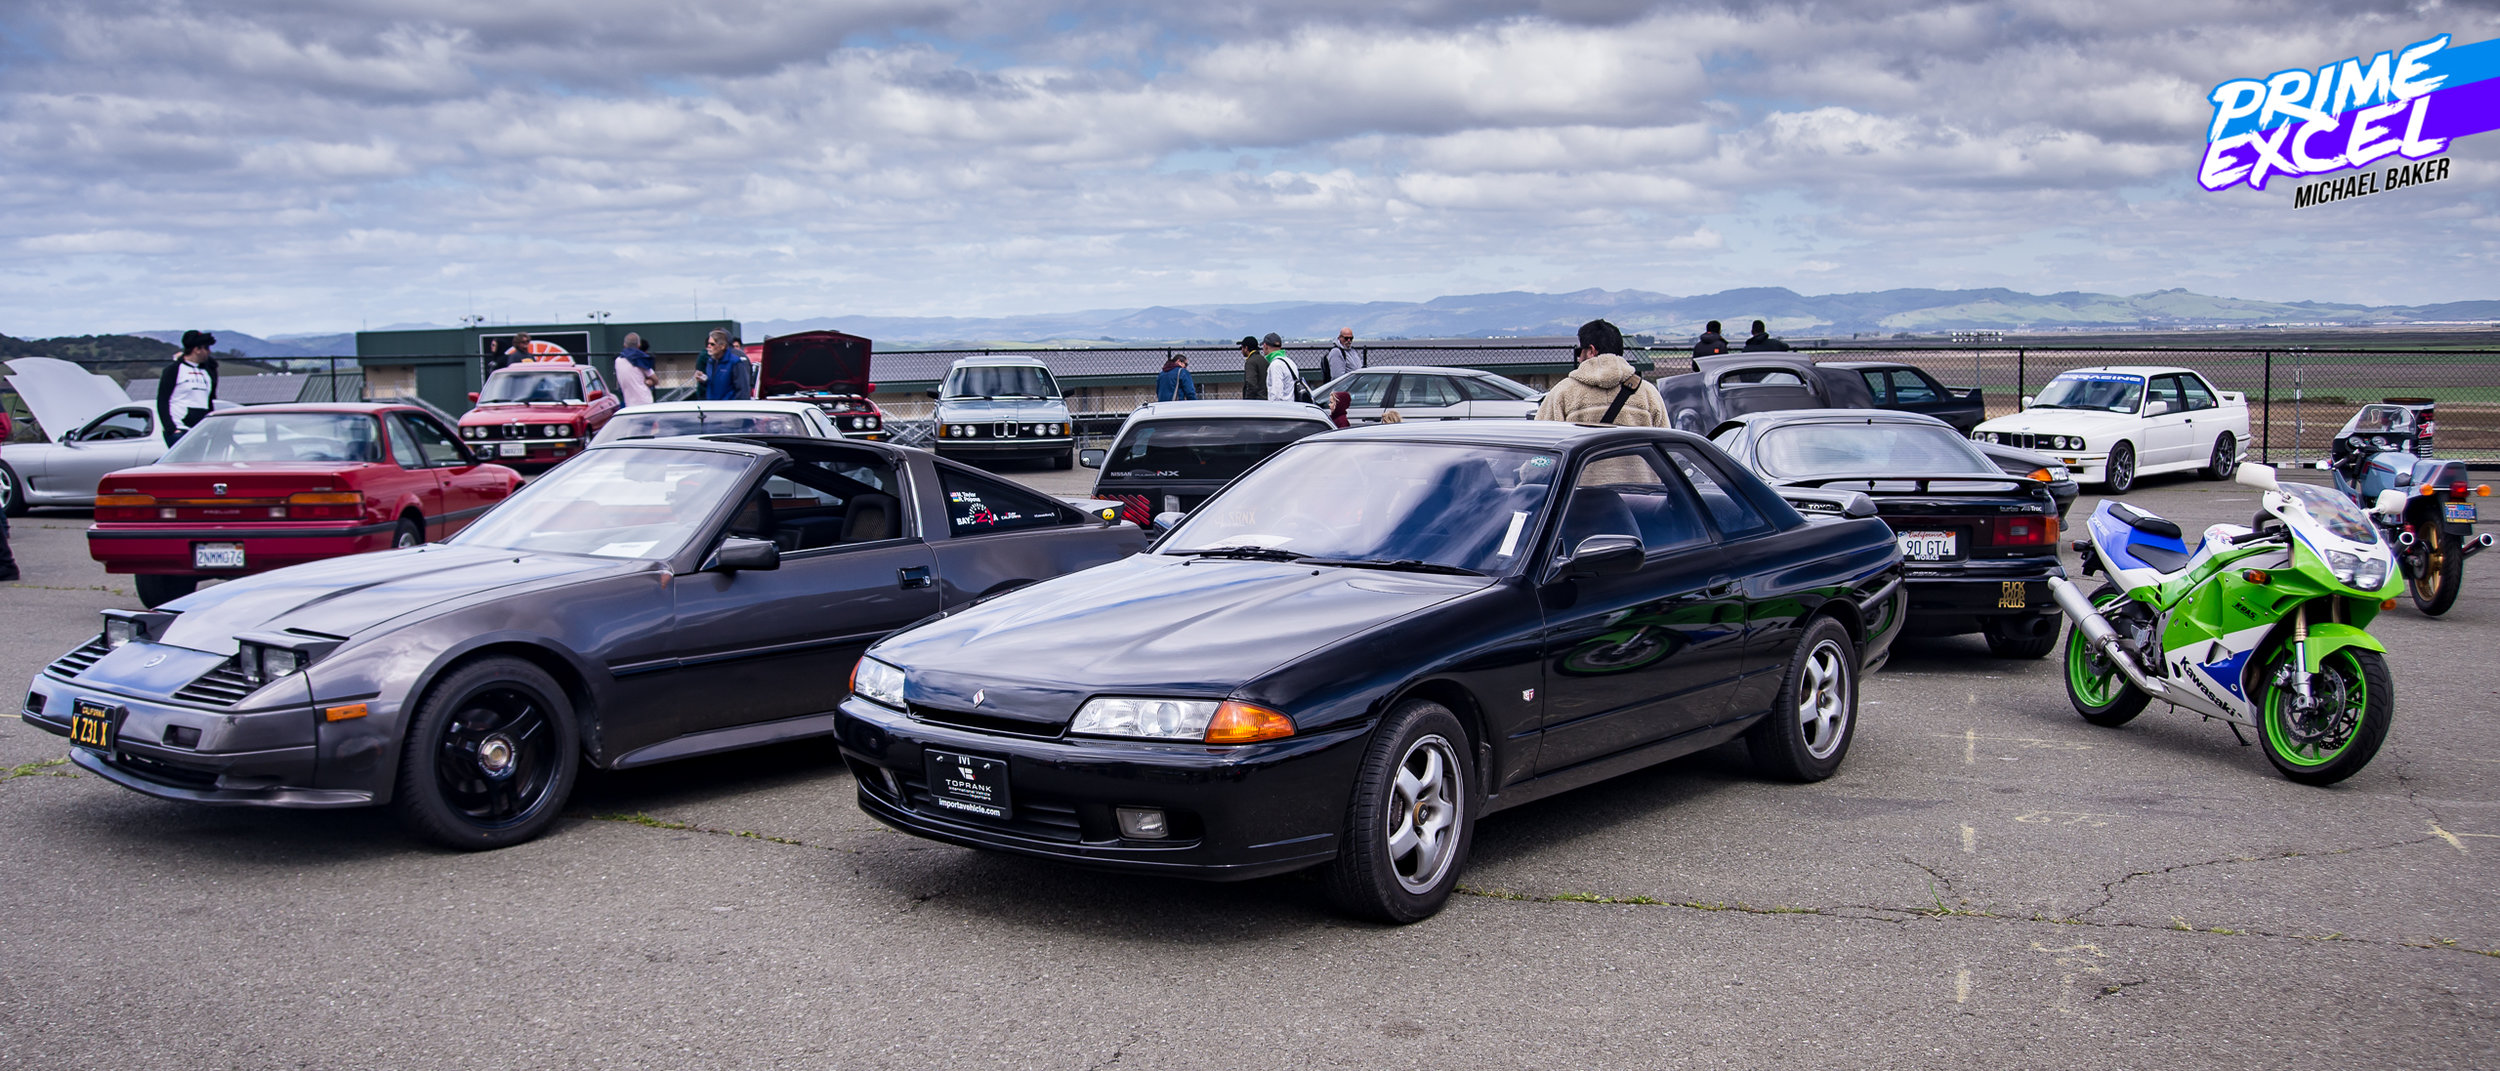 """""""Radwood Royalty"""", the sort of """"best of"""" section, had all manner of cars and bikes that represented the analog, driver-focused ethos."""